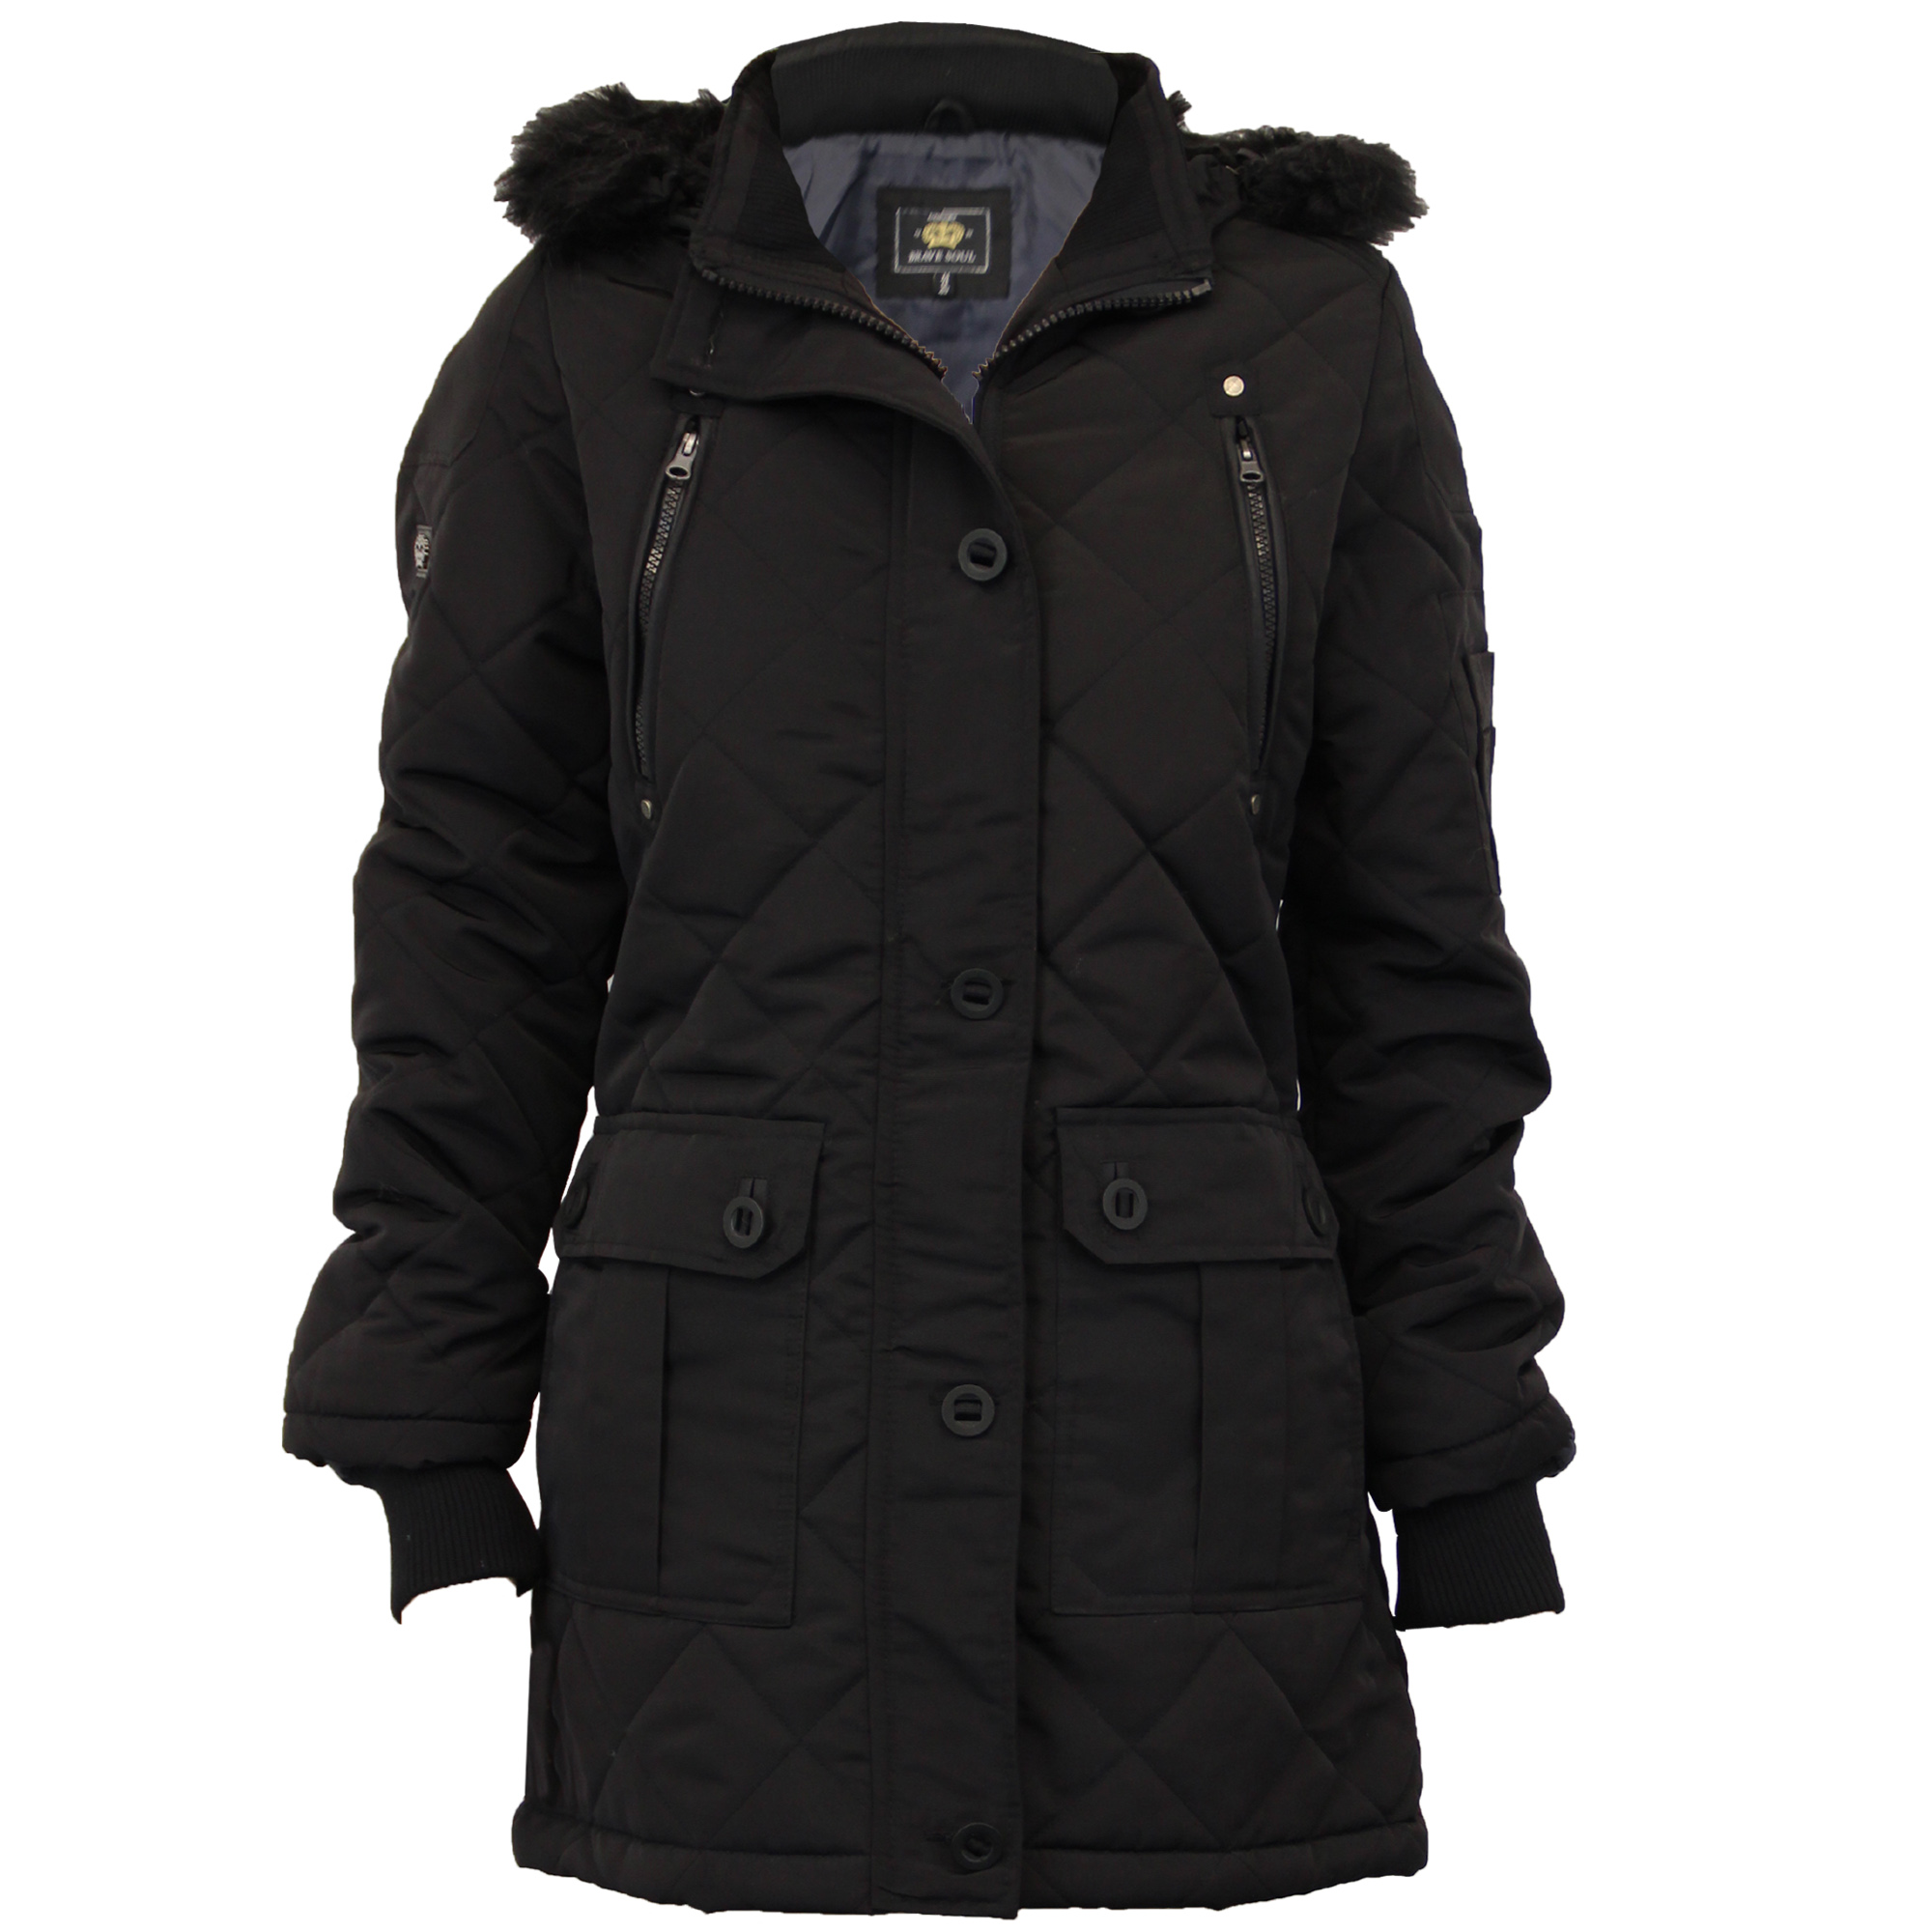 Best prices on Faux fur winter coats in Women's Jackets & Coats online. Visit Bizrate to find the best deals on top brands. Read reviews on Clothing & Accessories merchants and buy with confidence.